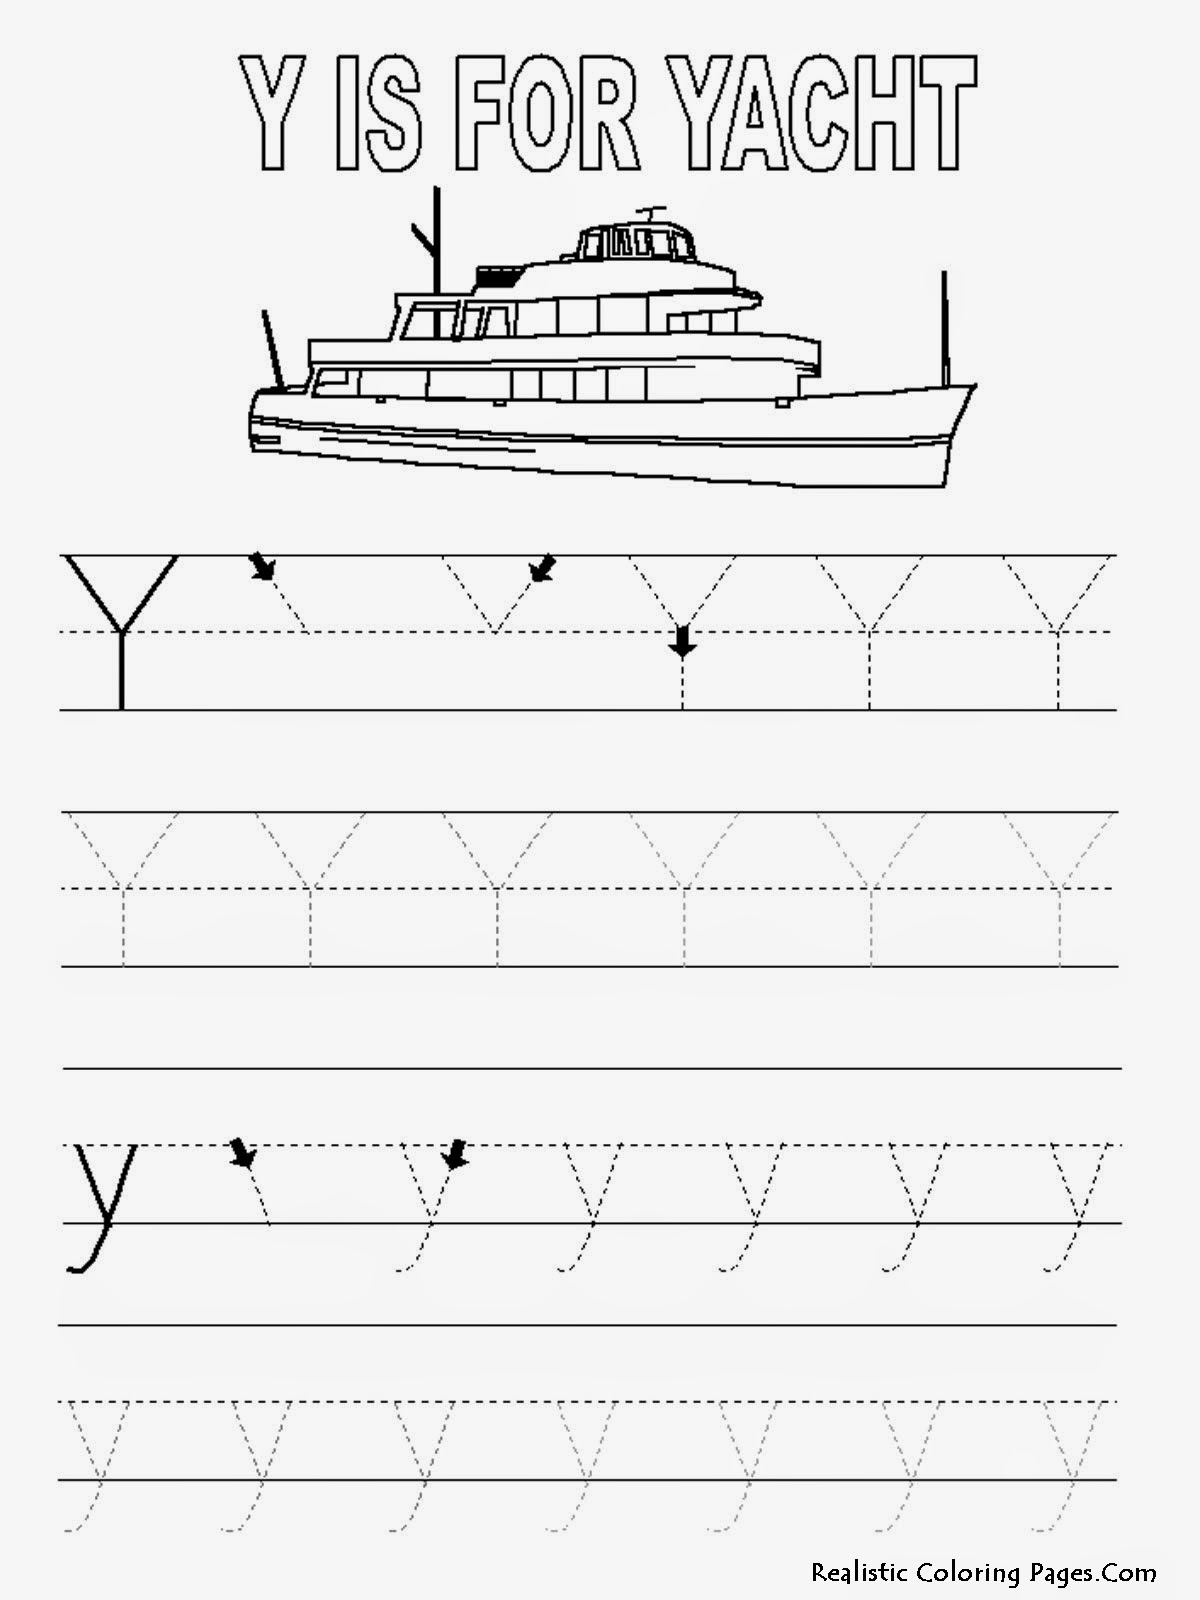 Alphabet Tracer Pages Y Yacht